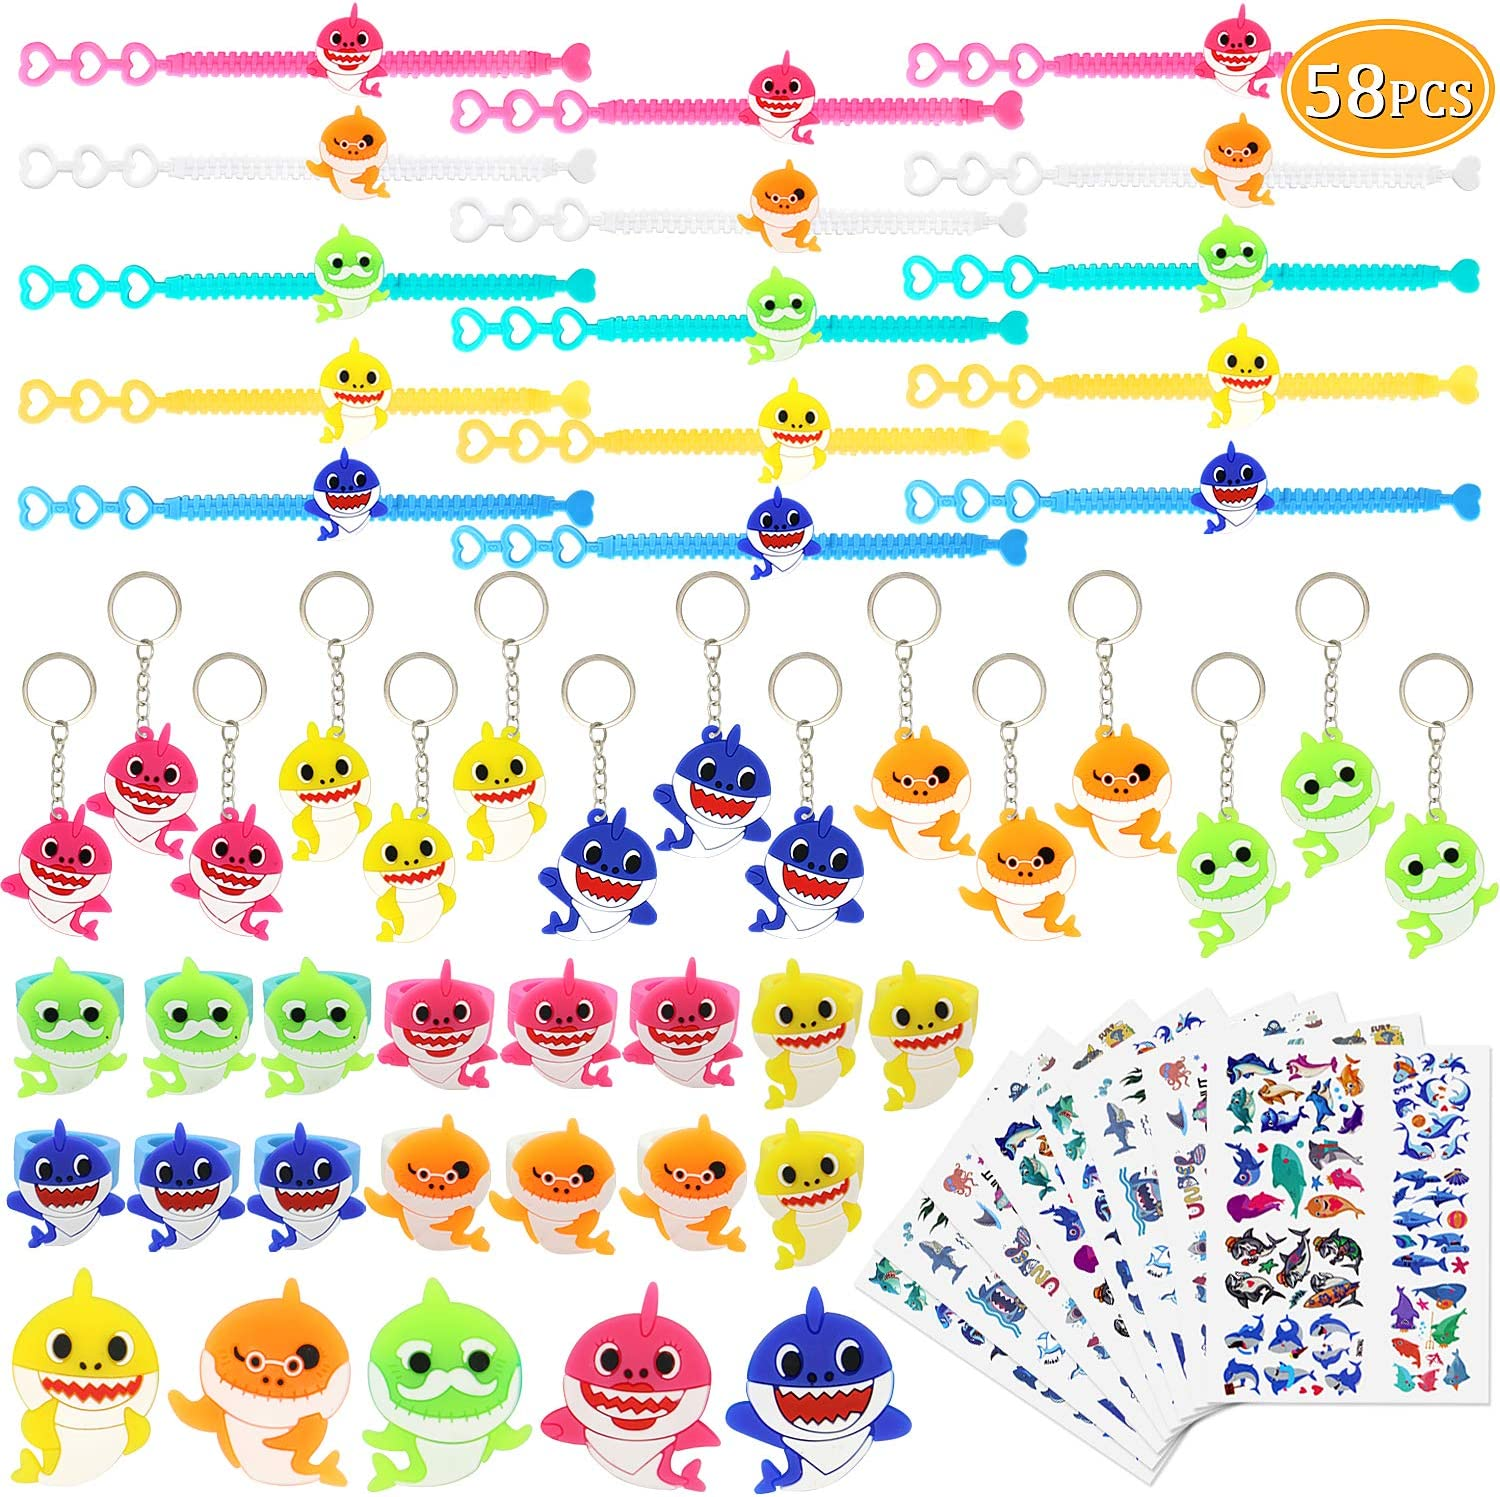 58PCs Cute Shark Party Favors Shark Bracelets Rings Keychains Tattoos Brooch Toys Prizes Gift Carnivals for Kids Girls Boys Birthday Party Favor Supplies Pinata Fillers Goodie Bag Fillers